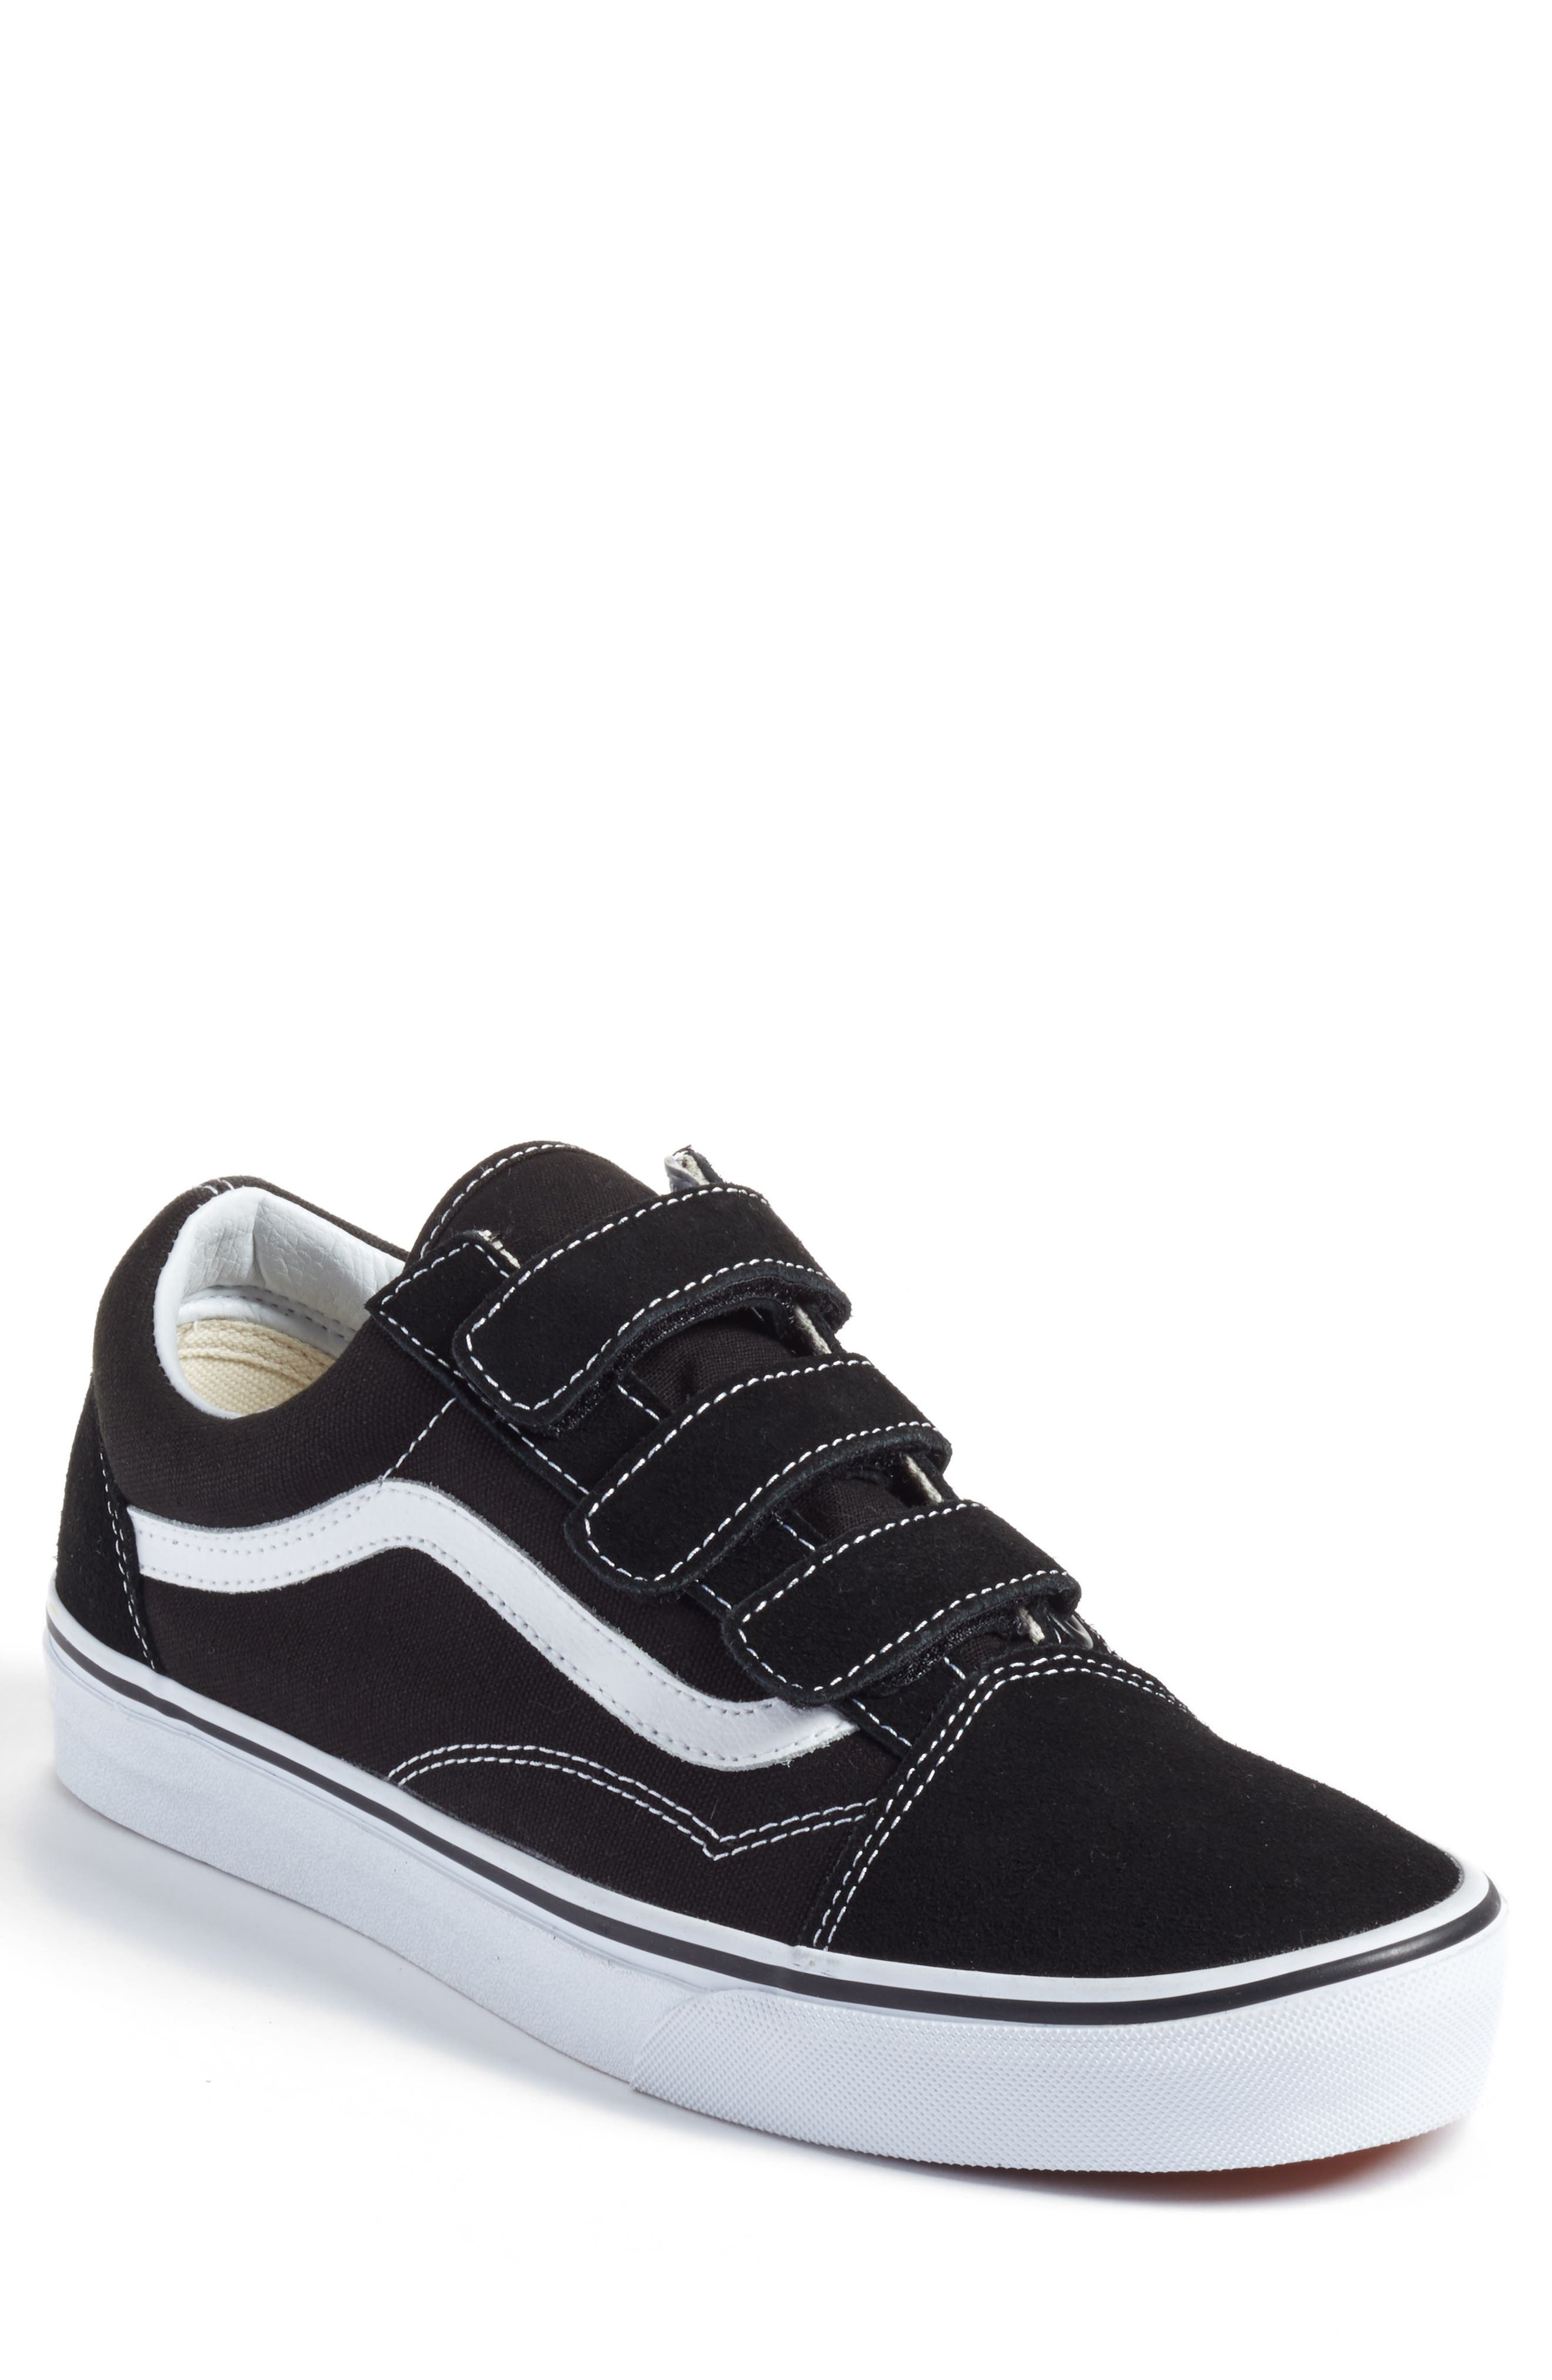 Old Skool V-Sneaker,                             Main thumbnail 1, color,                             Black/ True White Suede/Canvas